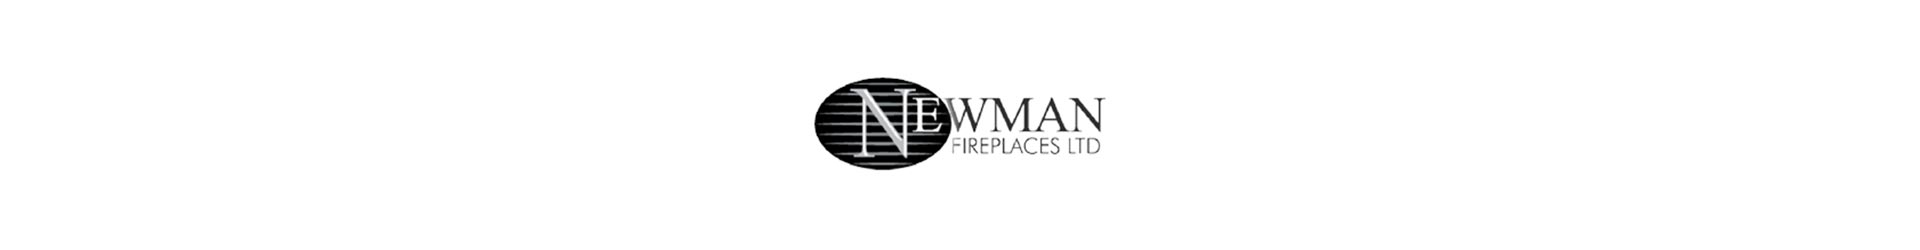 Newman-Fireplaces-Banner